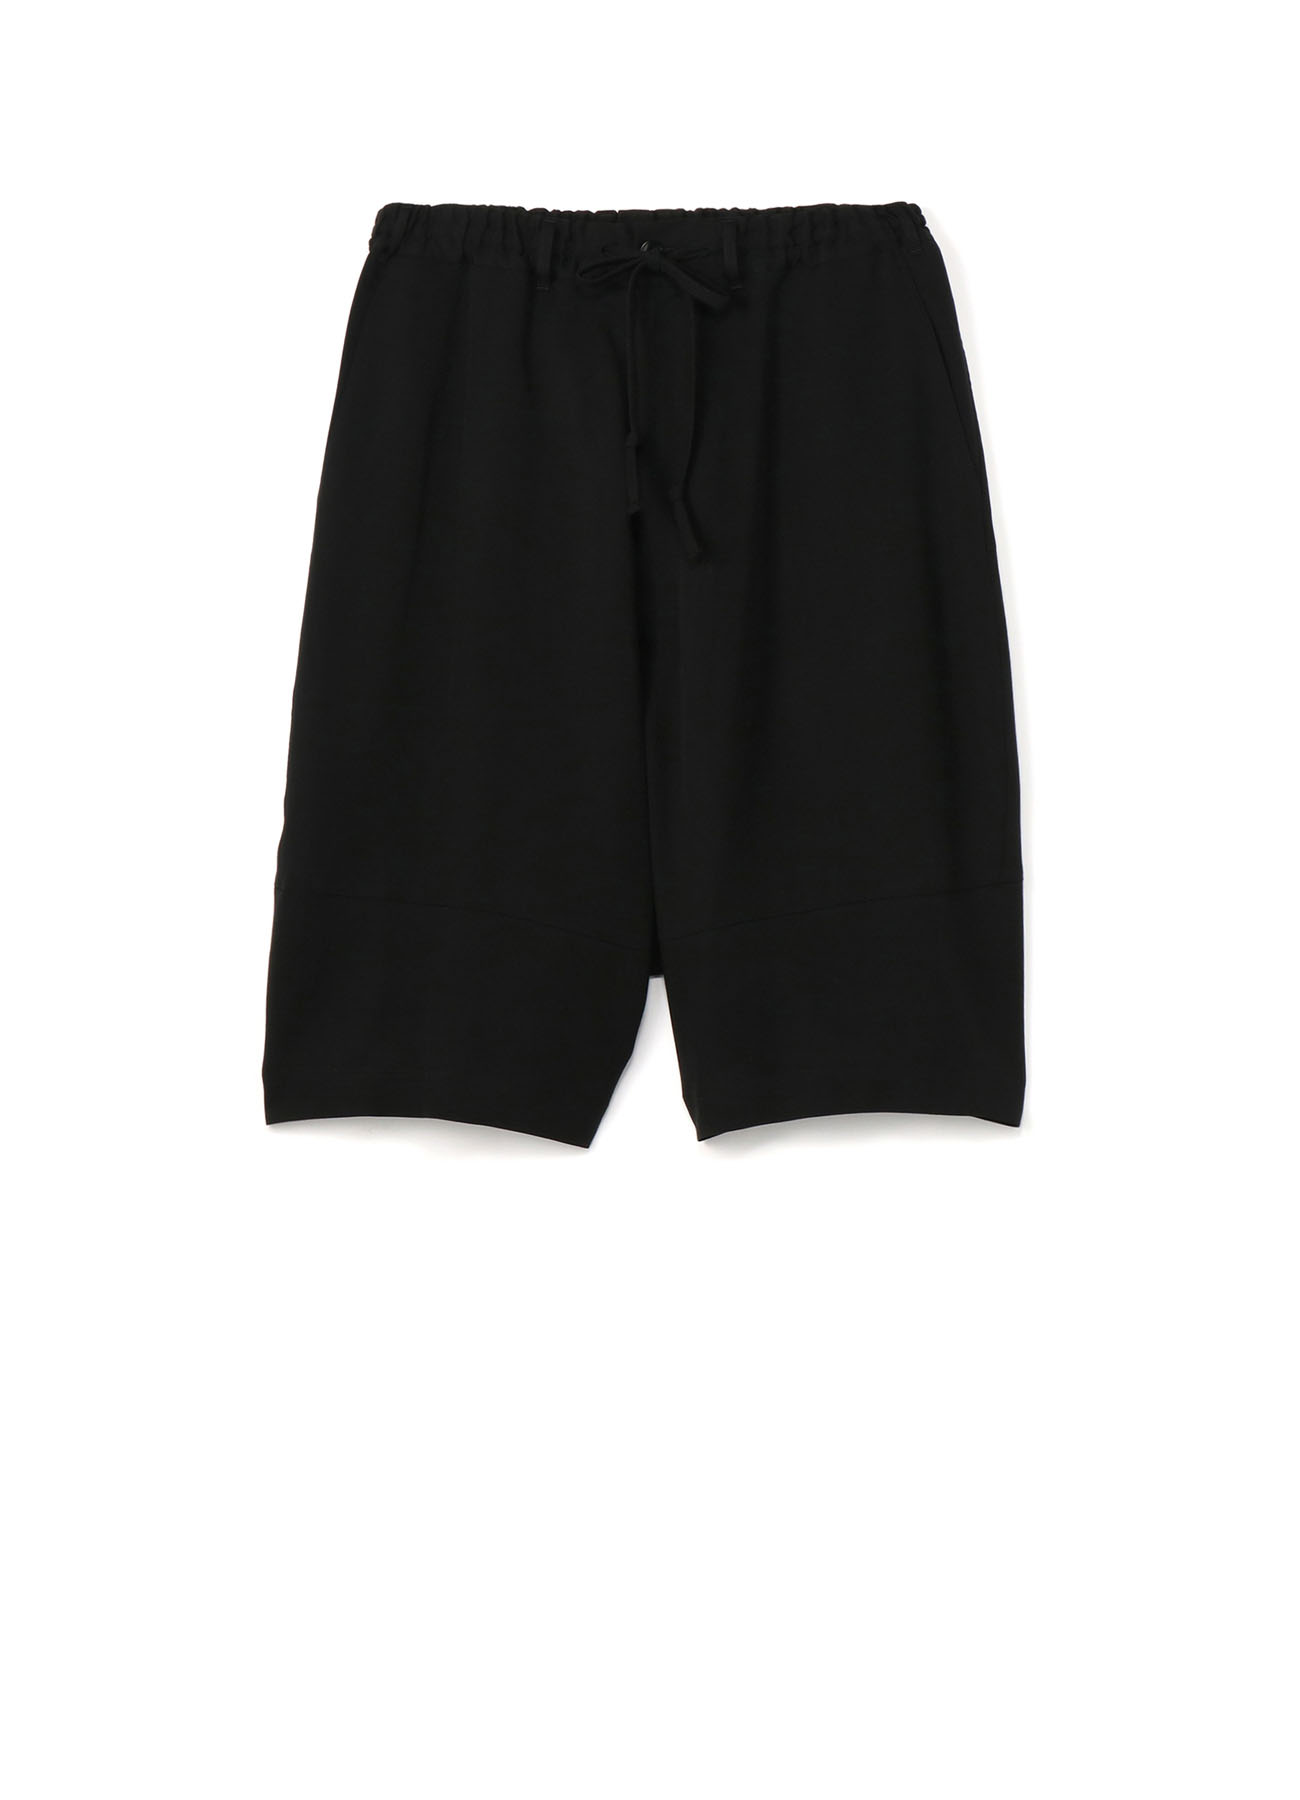 TE/Burberry Tapered Shorts